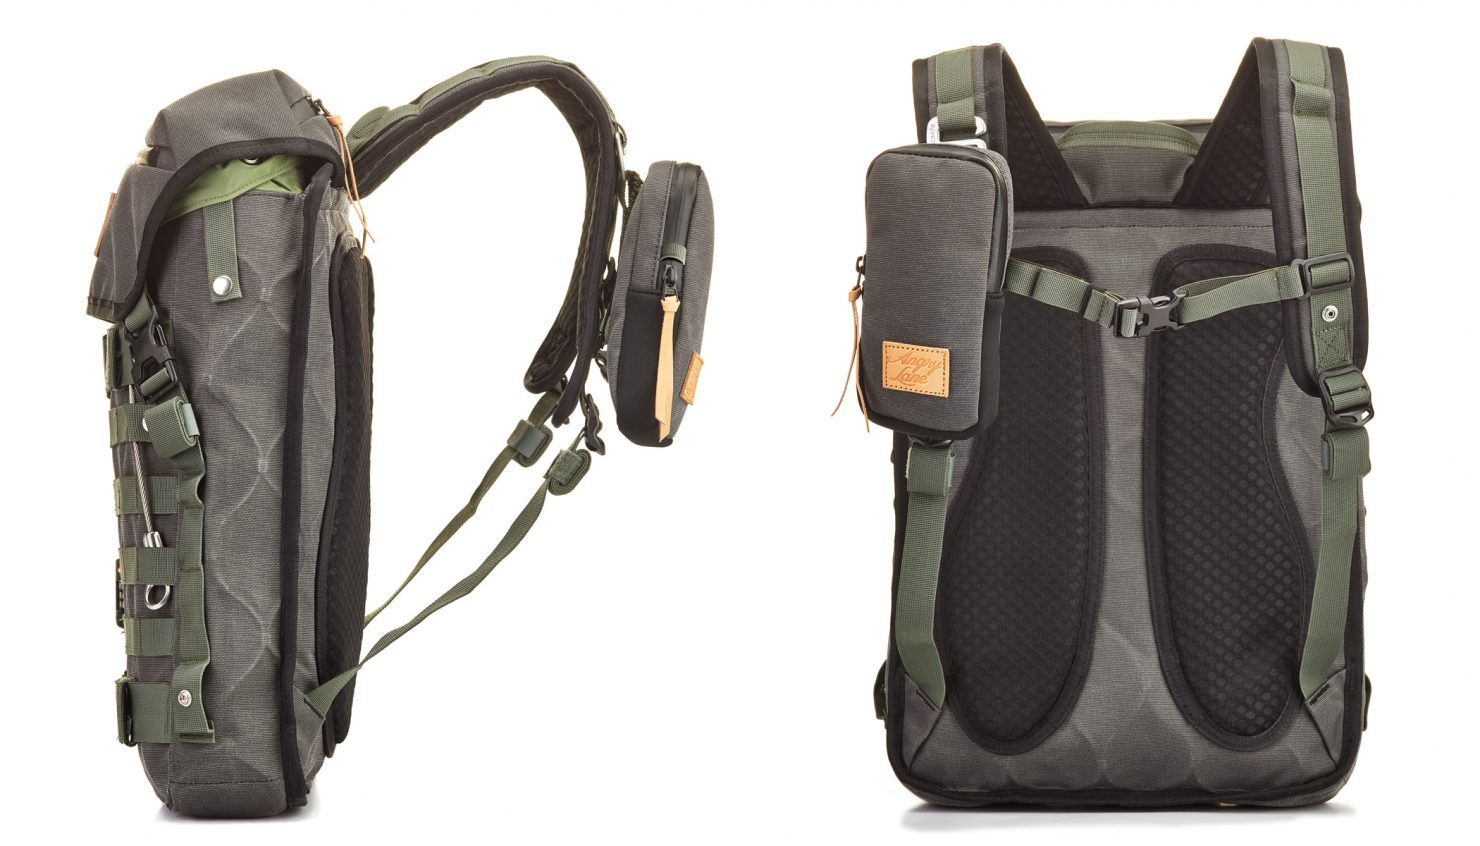 The Angry Lane Rider Daypack 5 1480x846 - The Angry Lane Rider Daypack